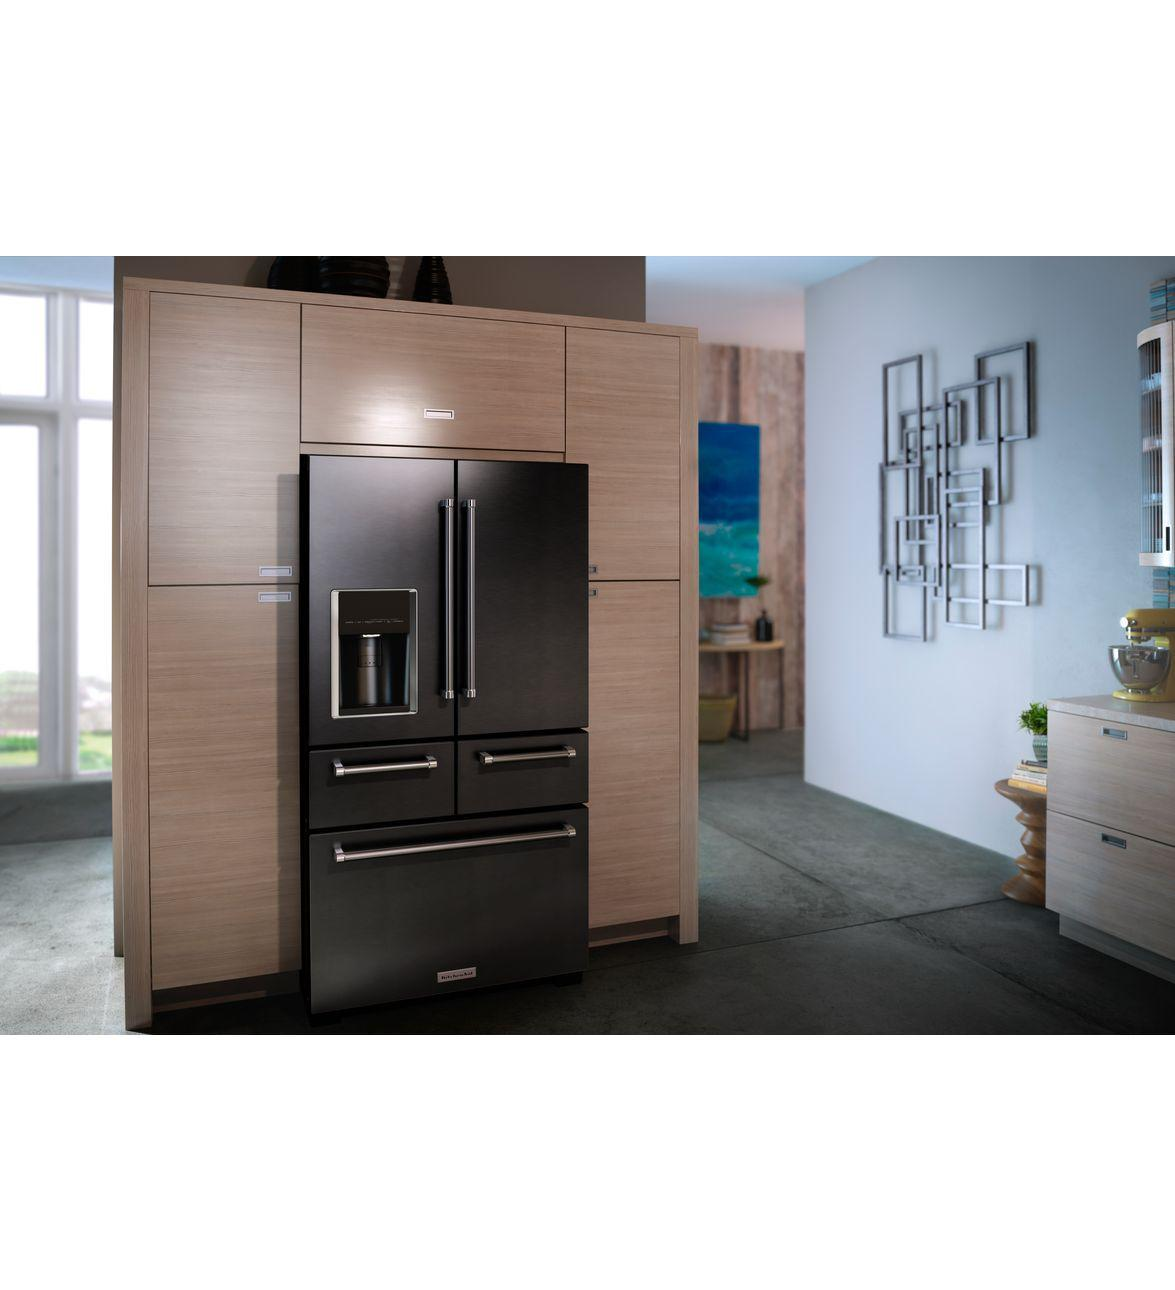 Krmf706e Kitchenaid Krmf706e French Door Refrigerators